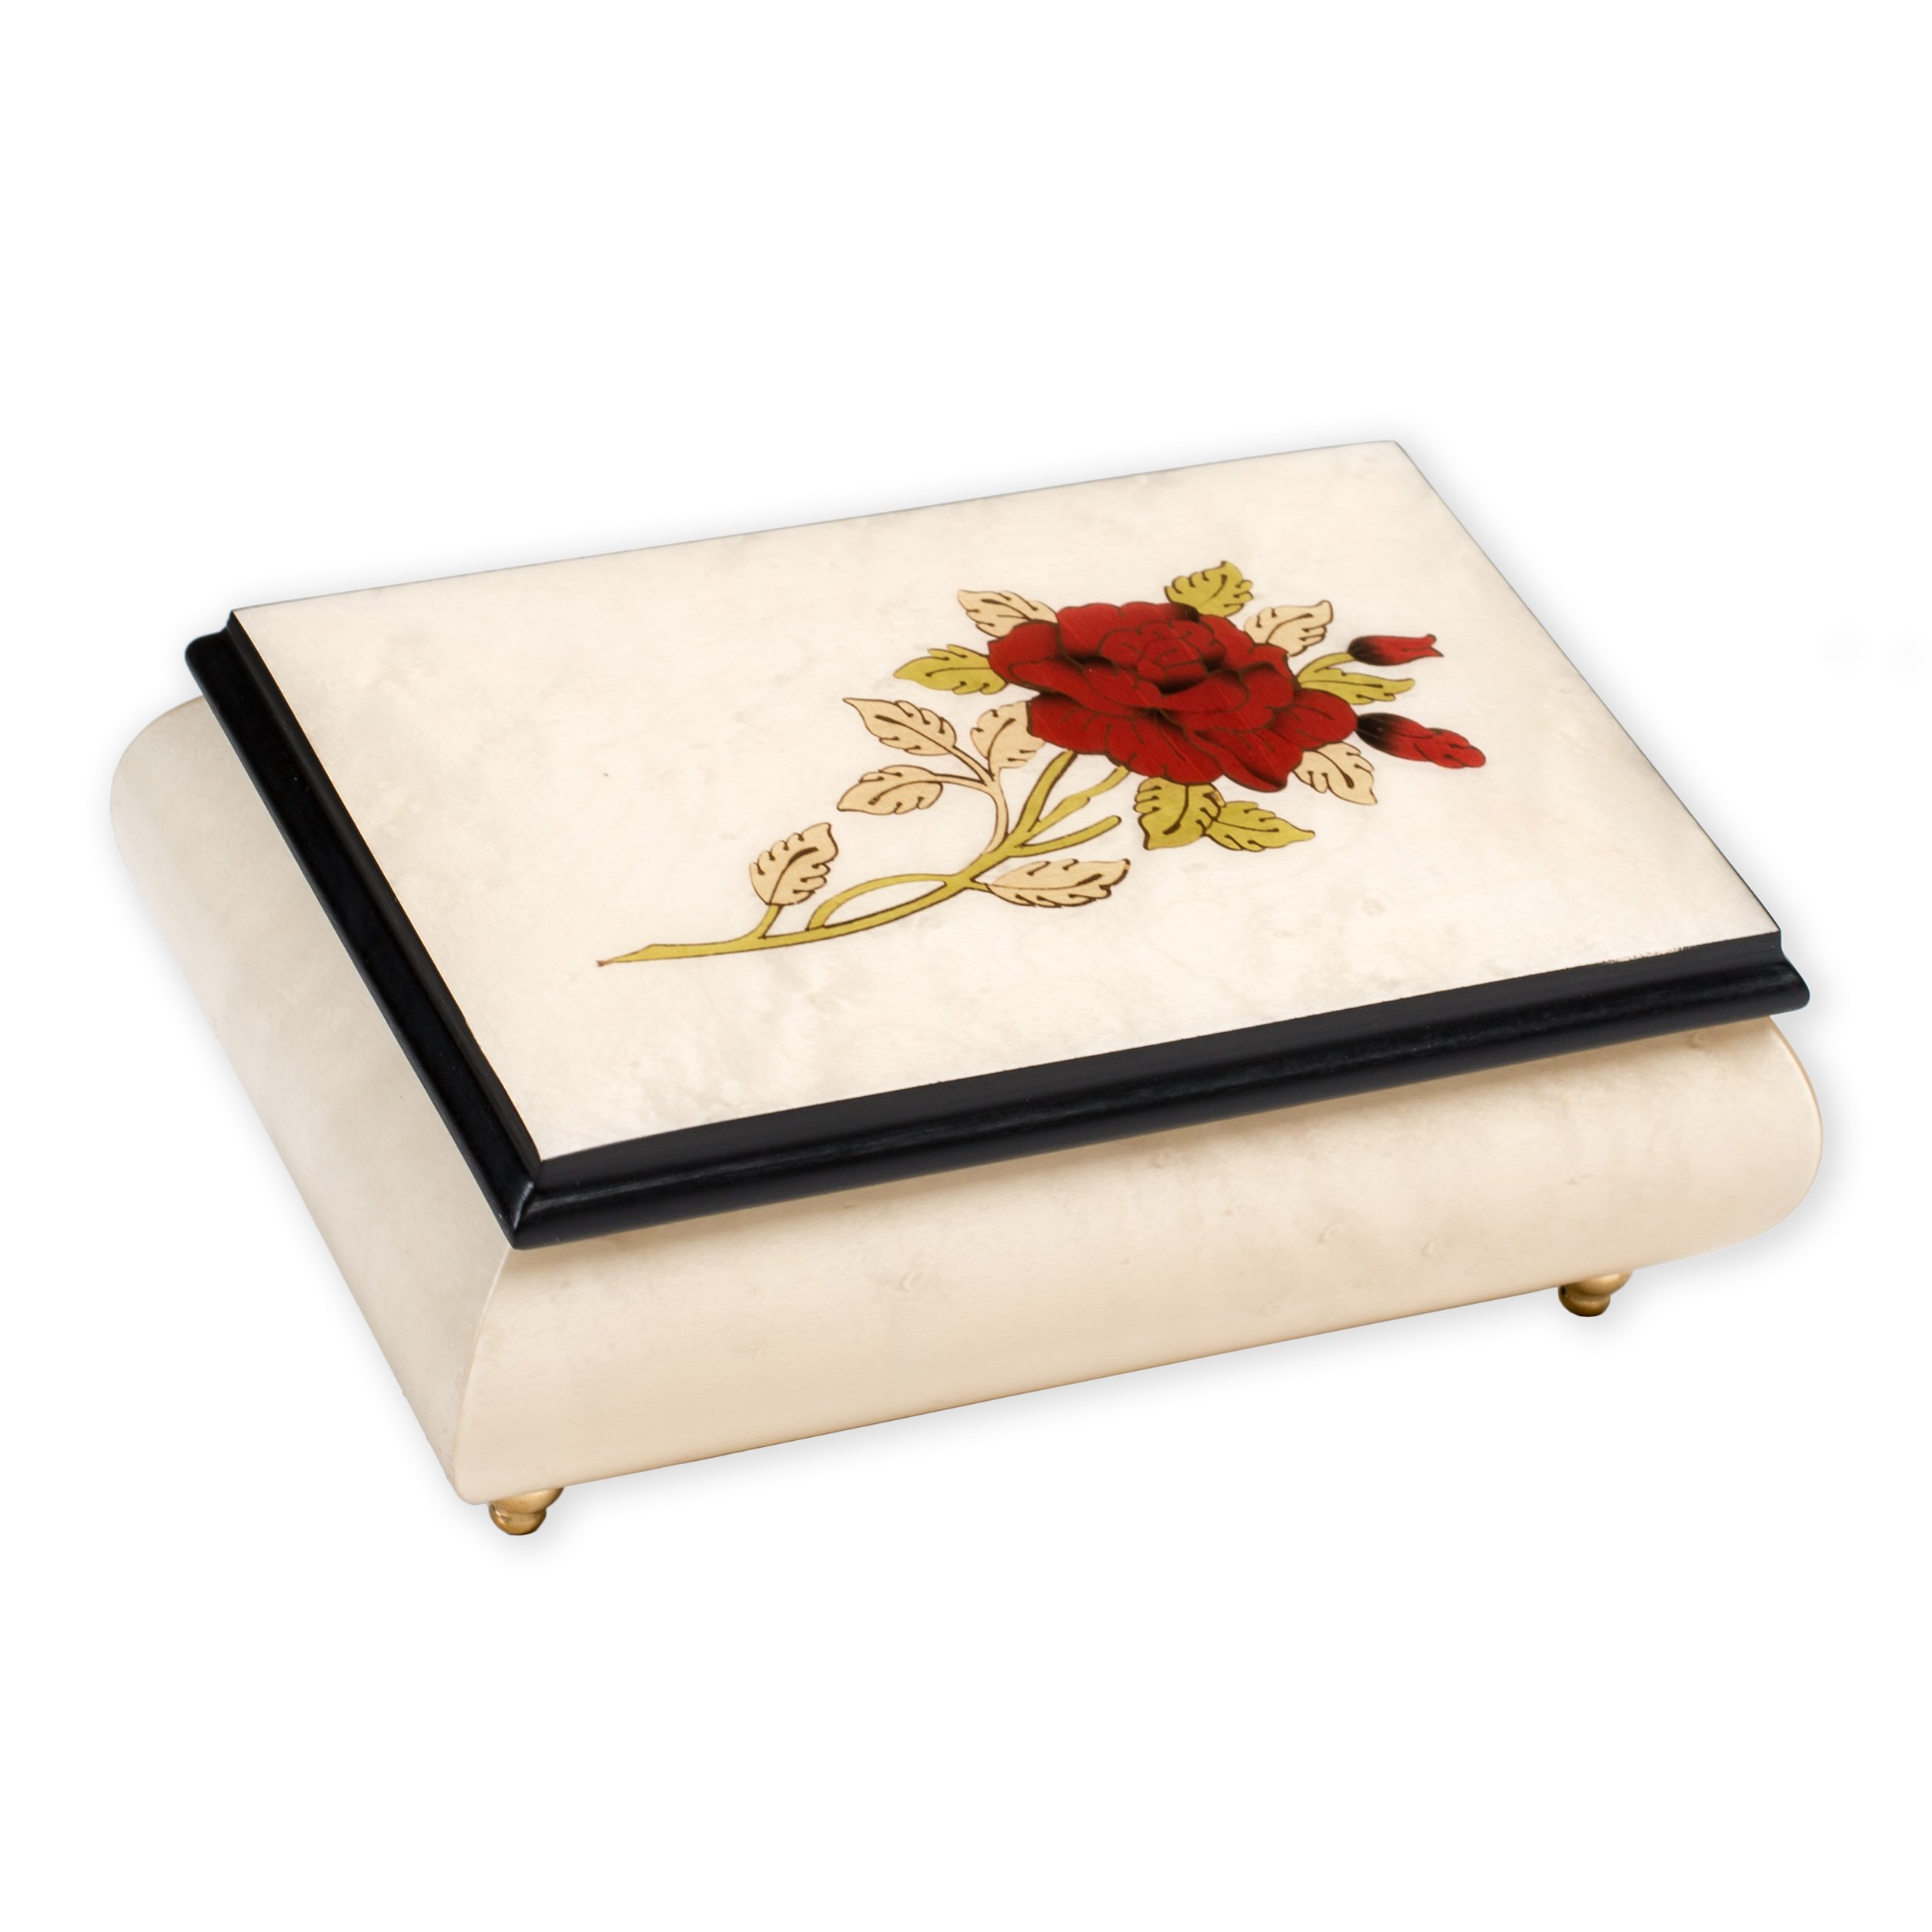 Red Rose Floral White Matte Italian Hand Crafted Inlaid Maple Wood Musical Box Plays Bolero